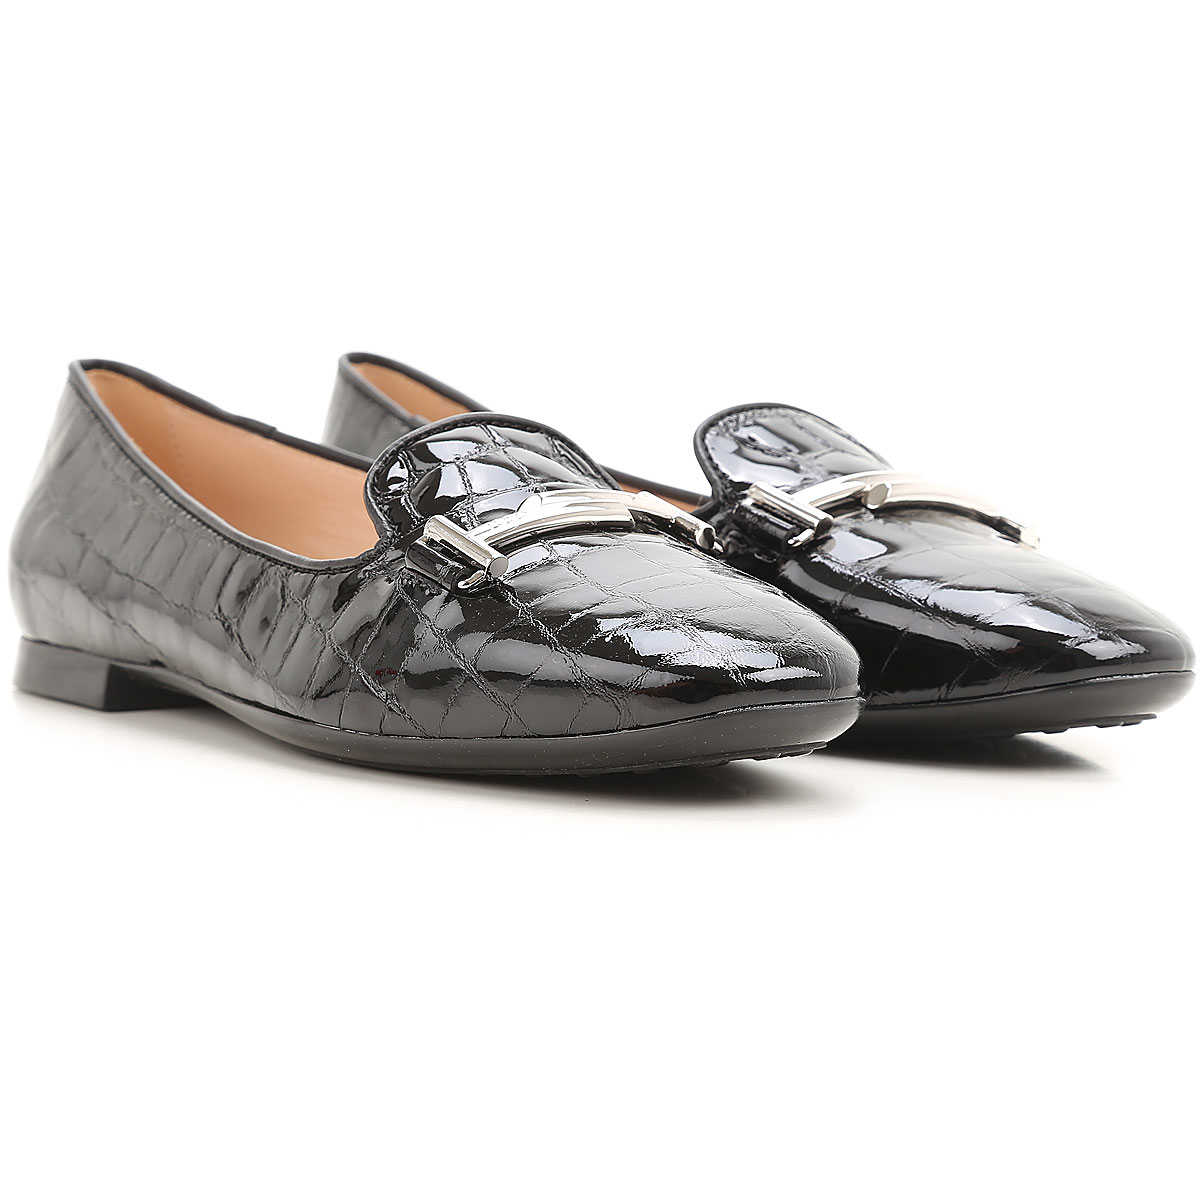 Tods Ballet Flats Ballerina Shoes for Women On Sale